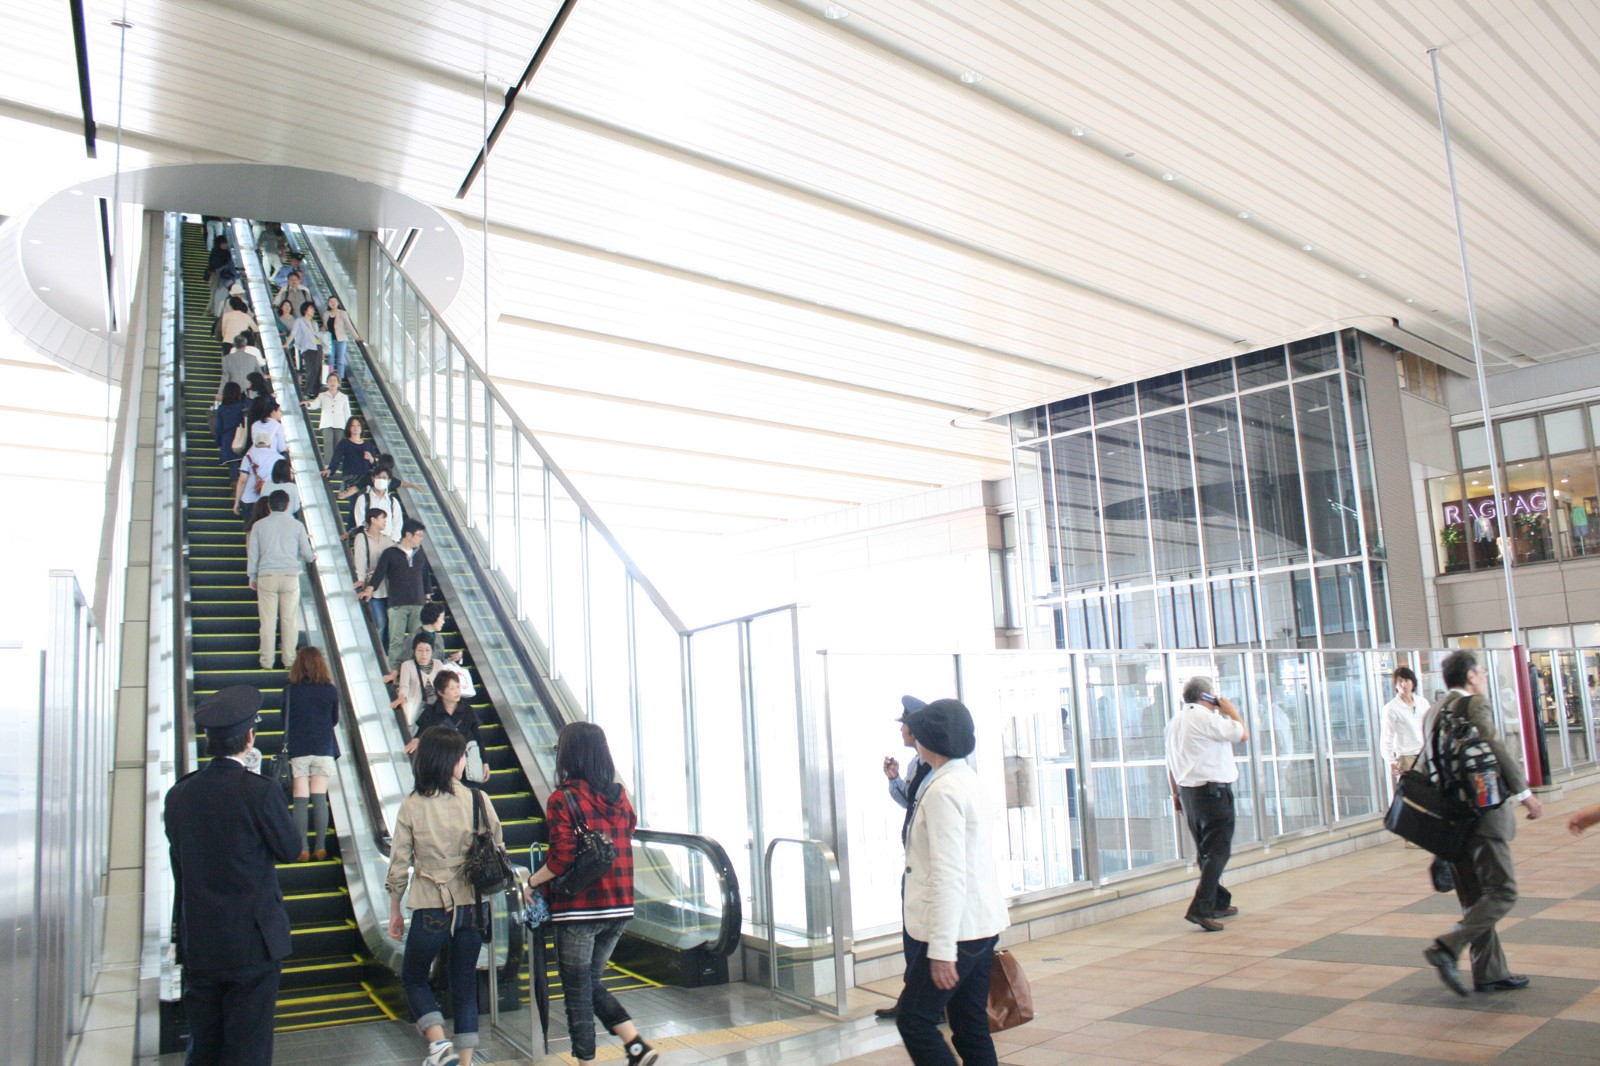 Escalator in Osaka (Kansai area)